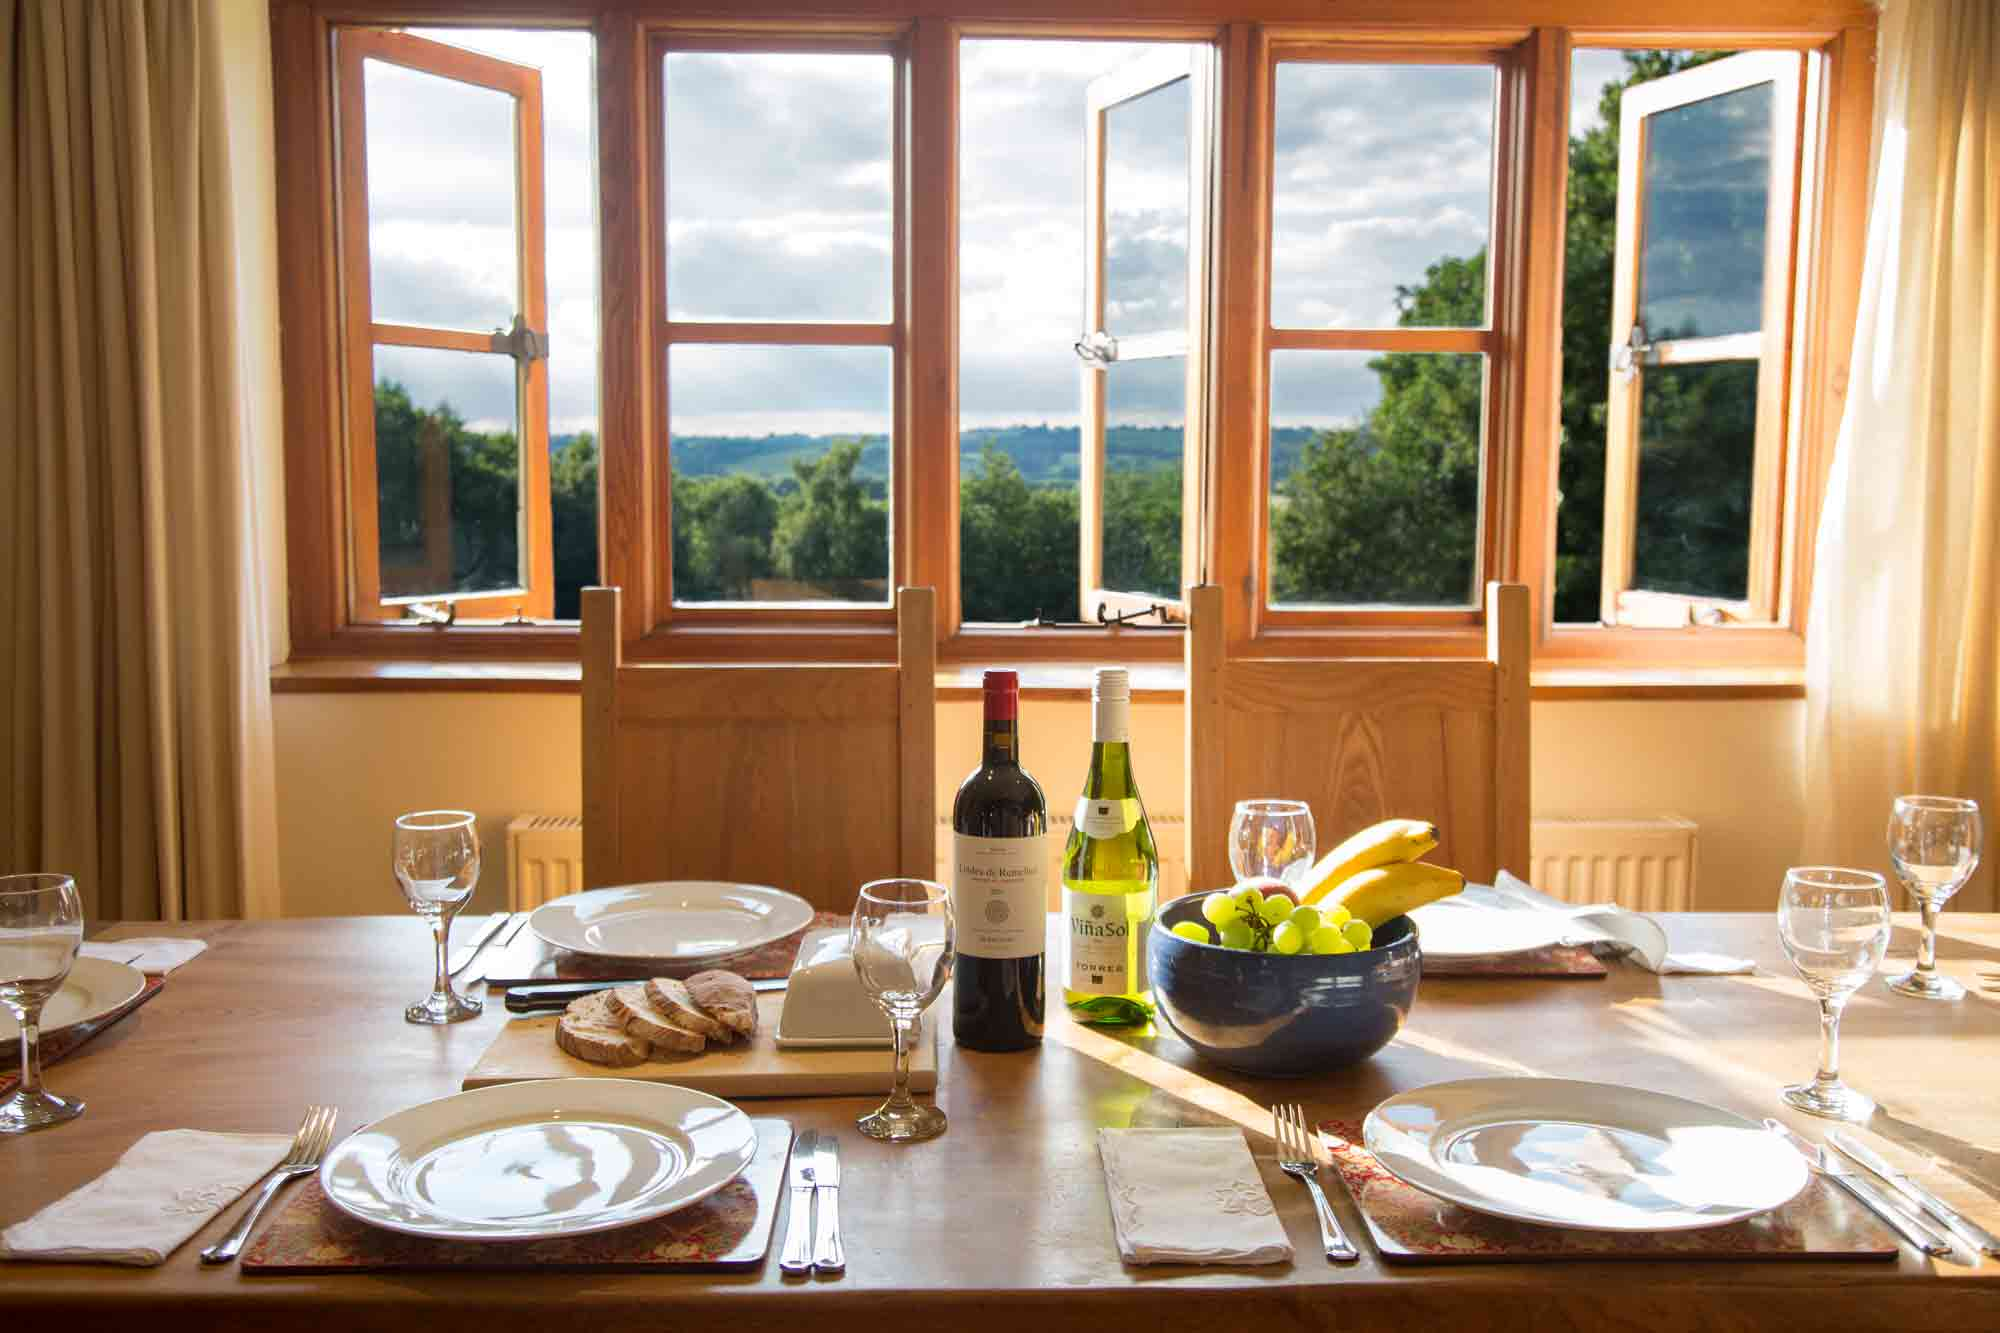 Cobnut - Heath Farm Cottages - Chipping Norton - Dining Table Views